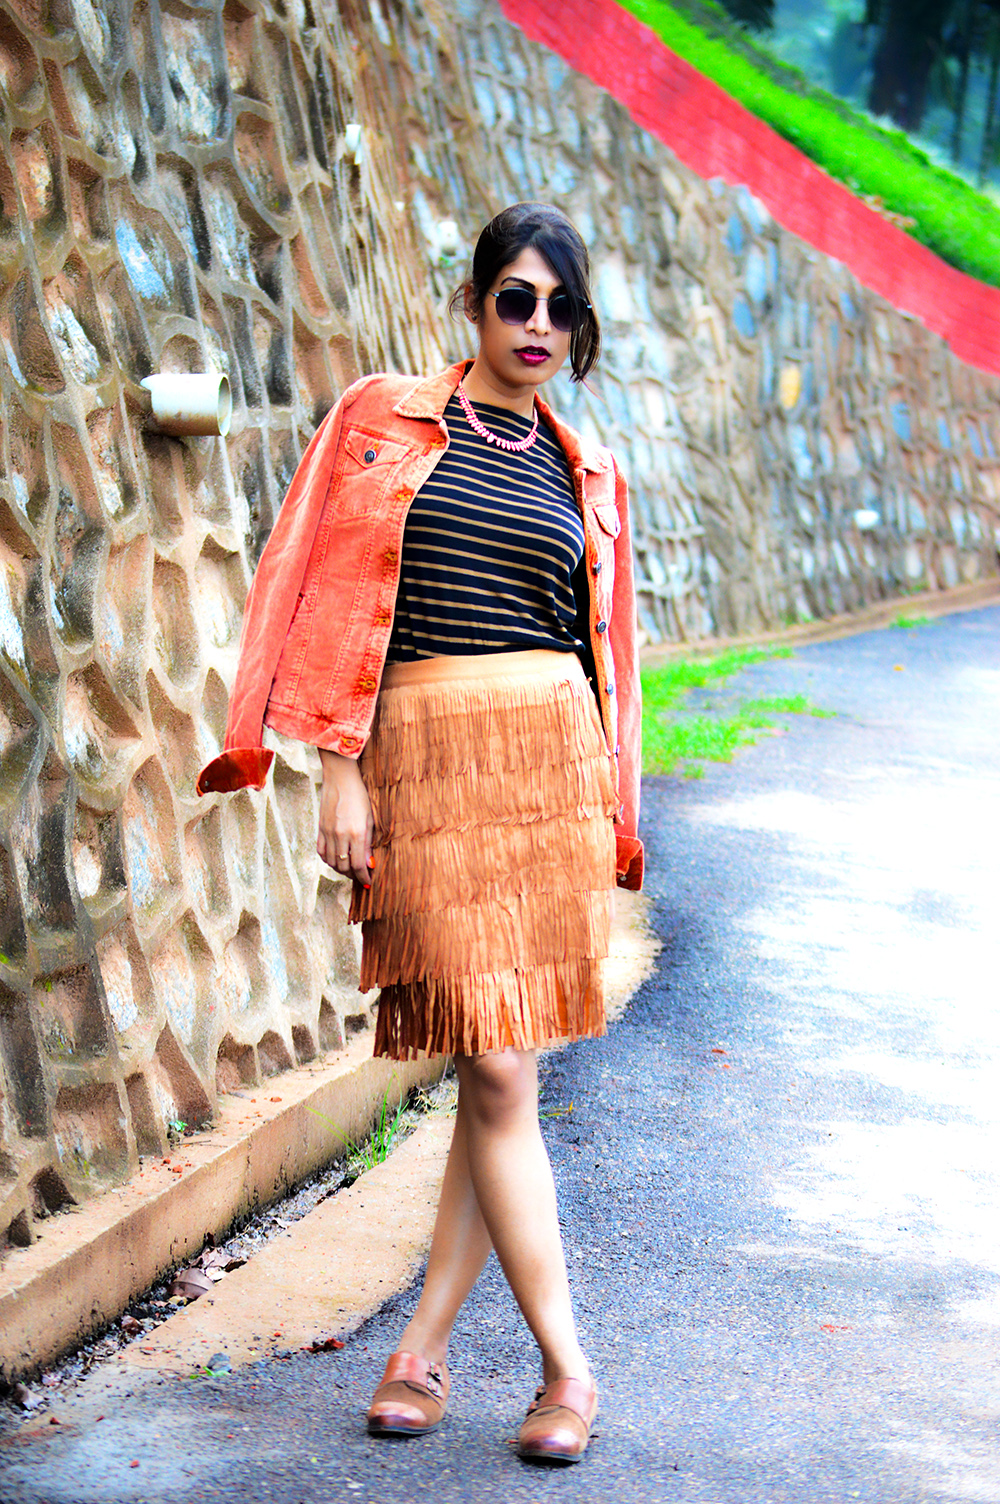 fashion, style, street style, street fashion, sarmistha goswami, style over coffee, pankaj jyoti barua, fashion blogger, indian fashion blogger, summer fashion, indian street style photography, fringe skirt, corduroy jacket, striped tee, lenskart sunglasses, Summer Street Style-6